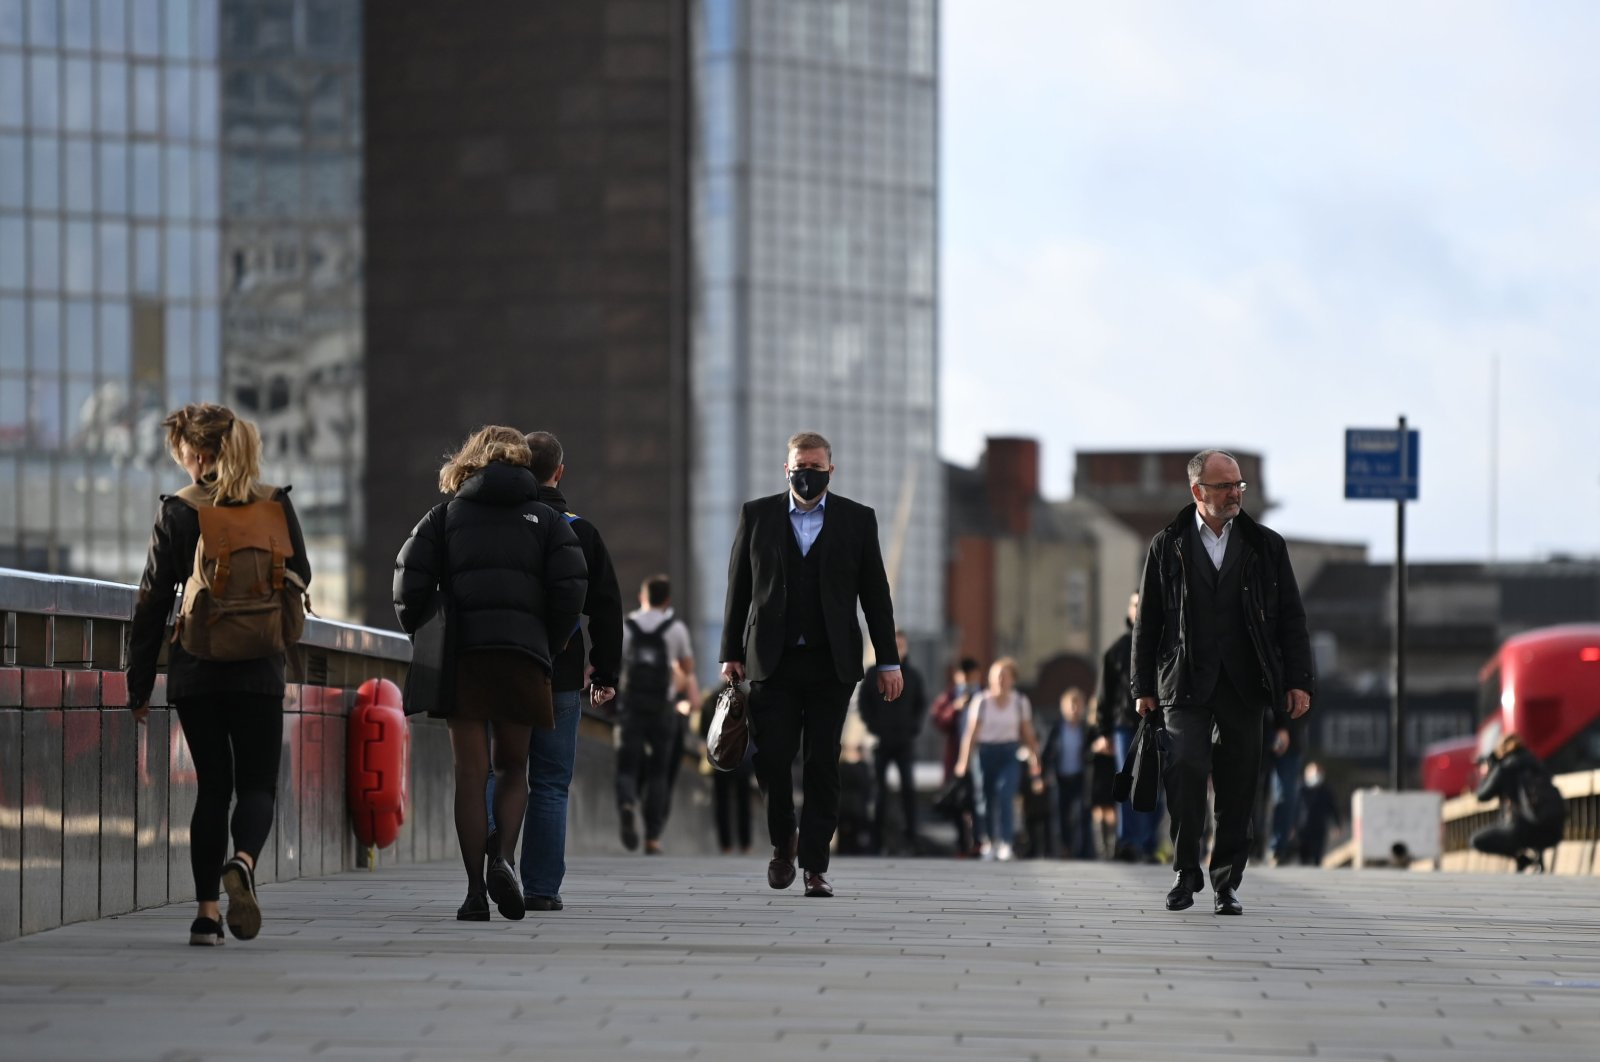 Commuters walk over London Bridge during the morning rush hour in central London, U.K., Nov. 2, 2020. (AFP Photo)